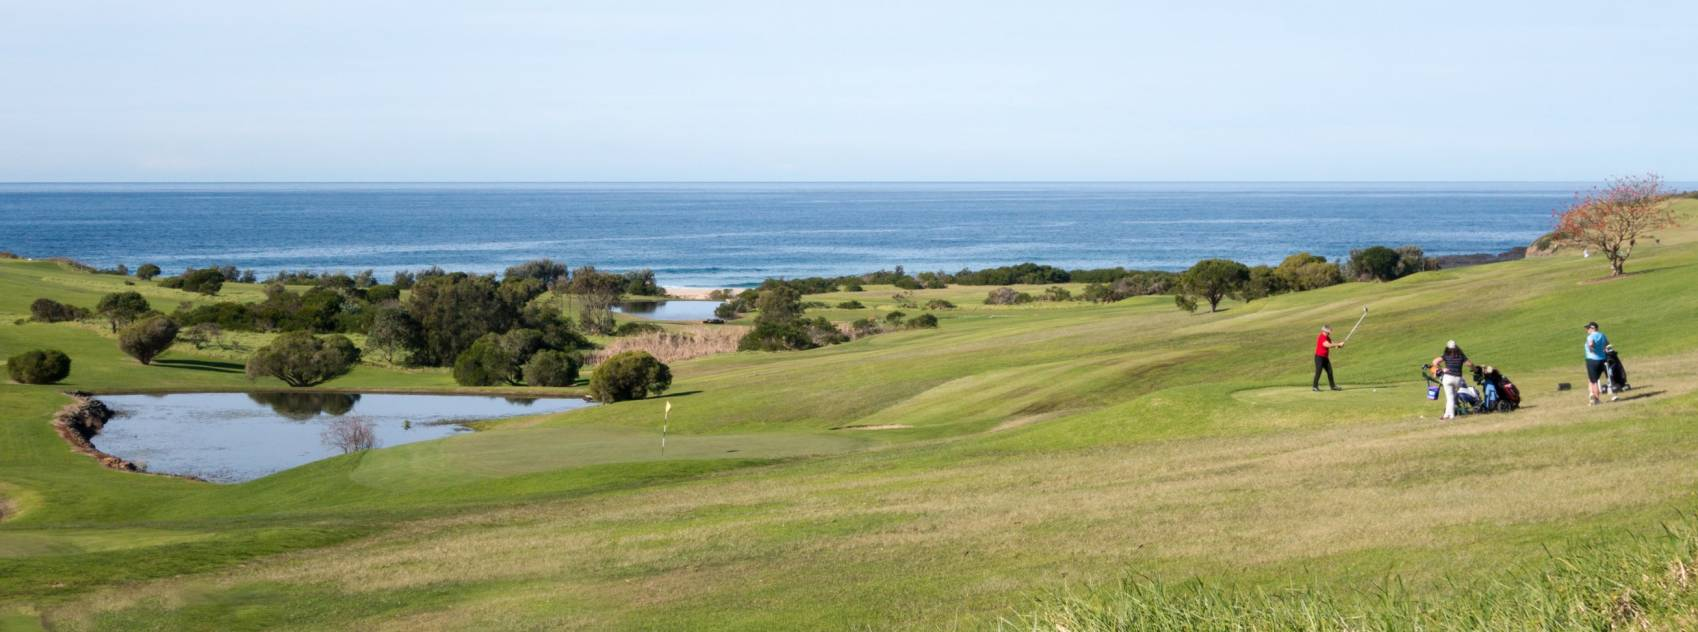 Gerringong Golf Course, near Seven Mile Beach, Gerroa